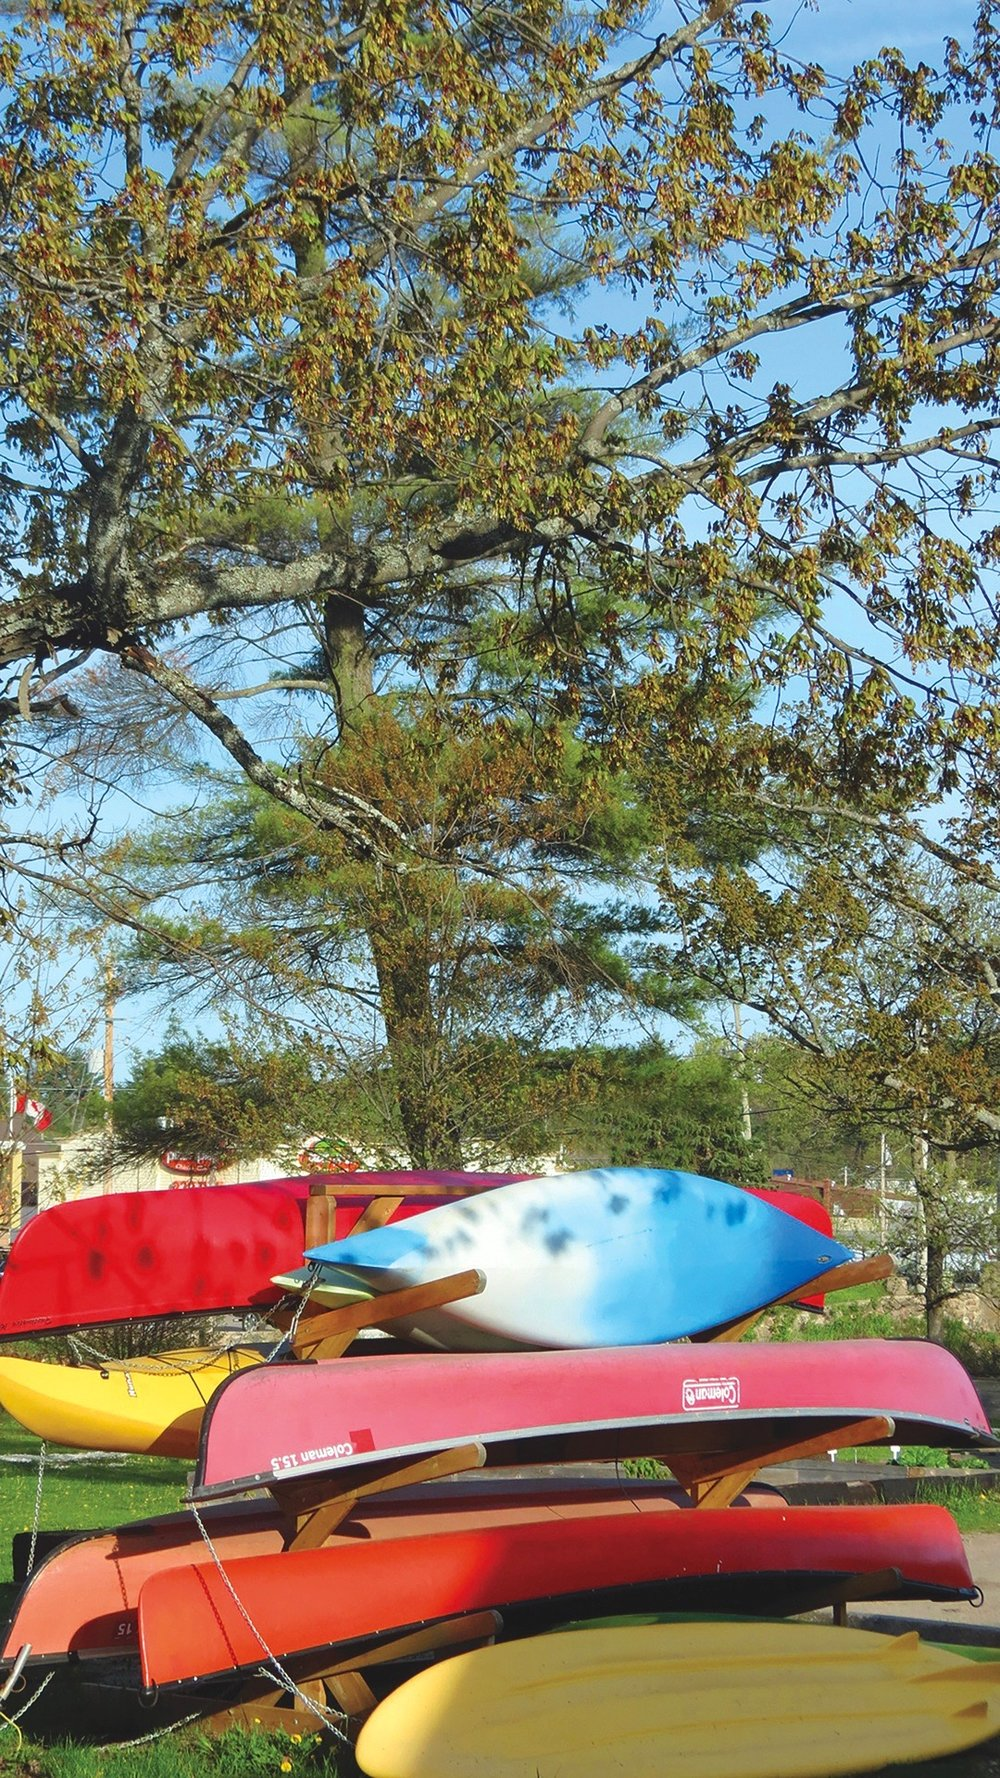 Canoes and kayaks are available for rental at Riverside Park, where the Waddle Dawb Cafe also serves seasonal snacks.